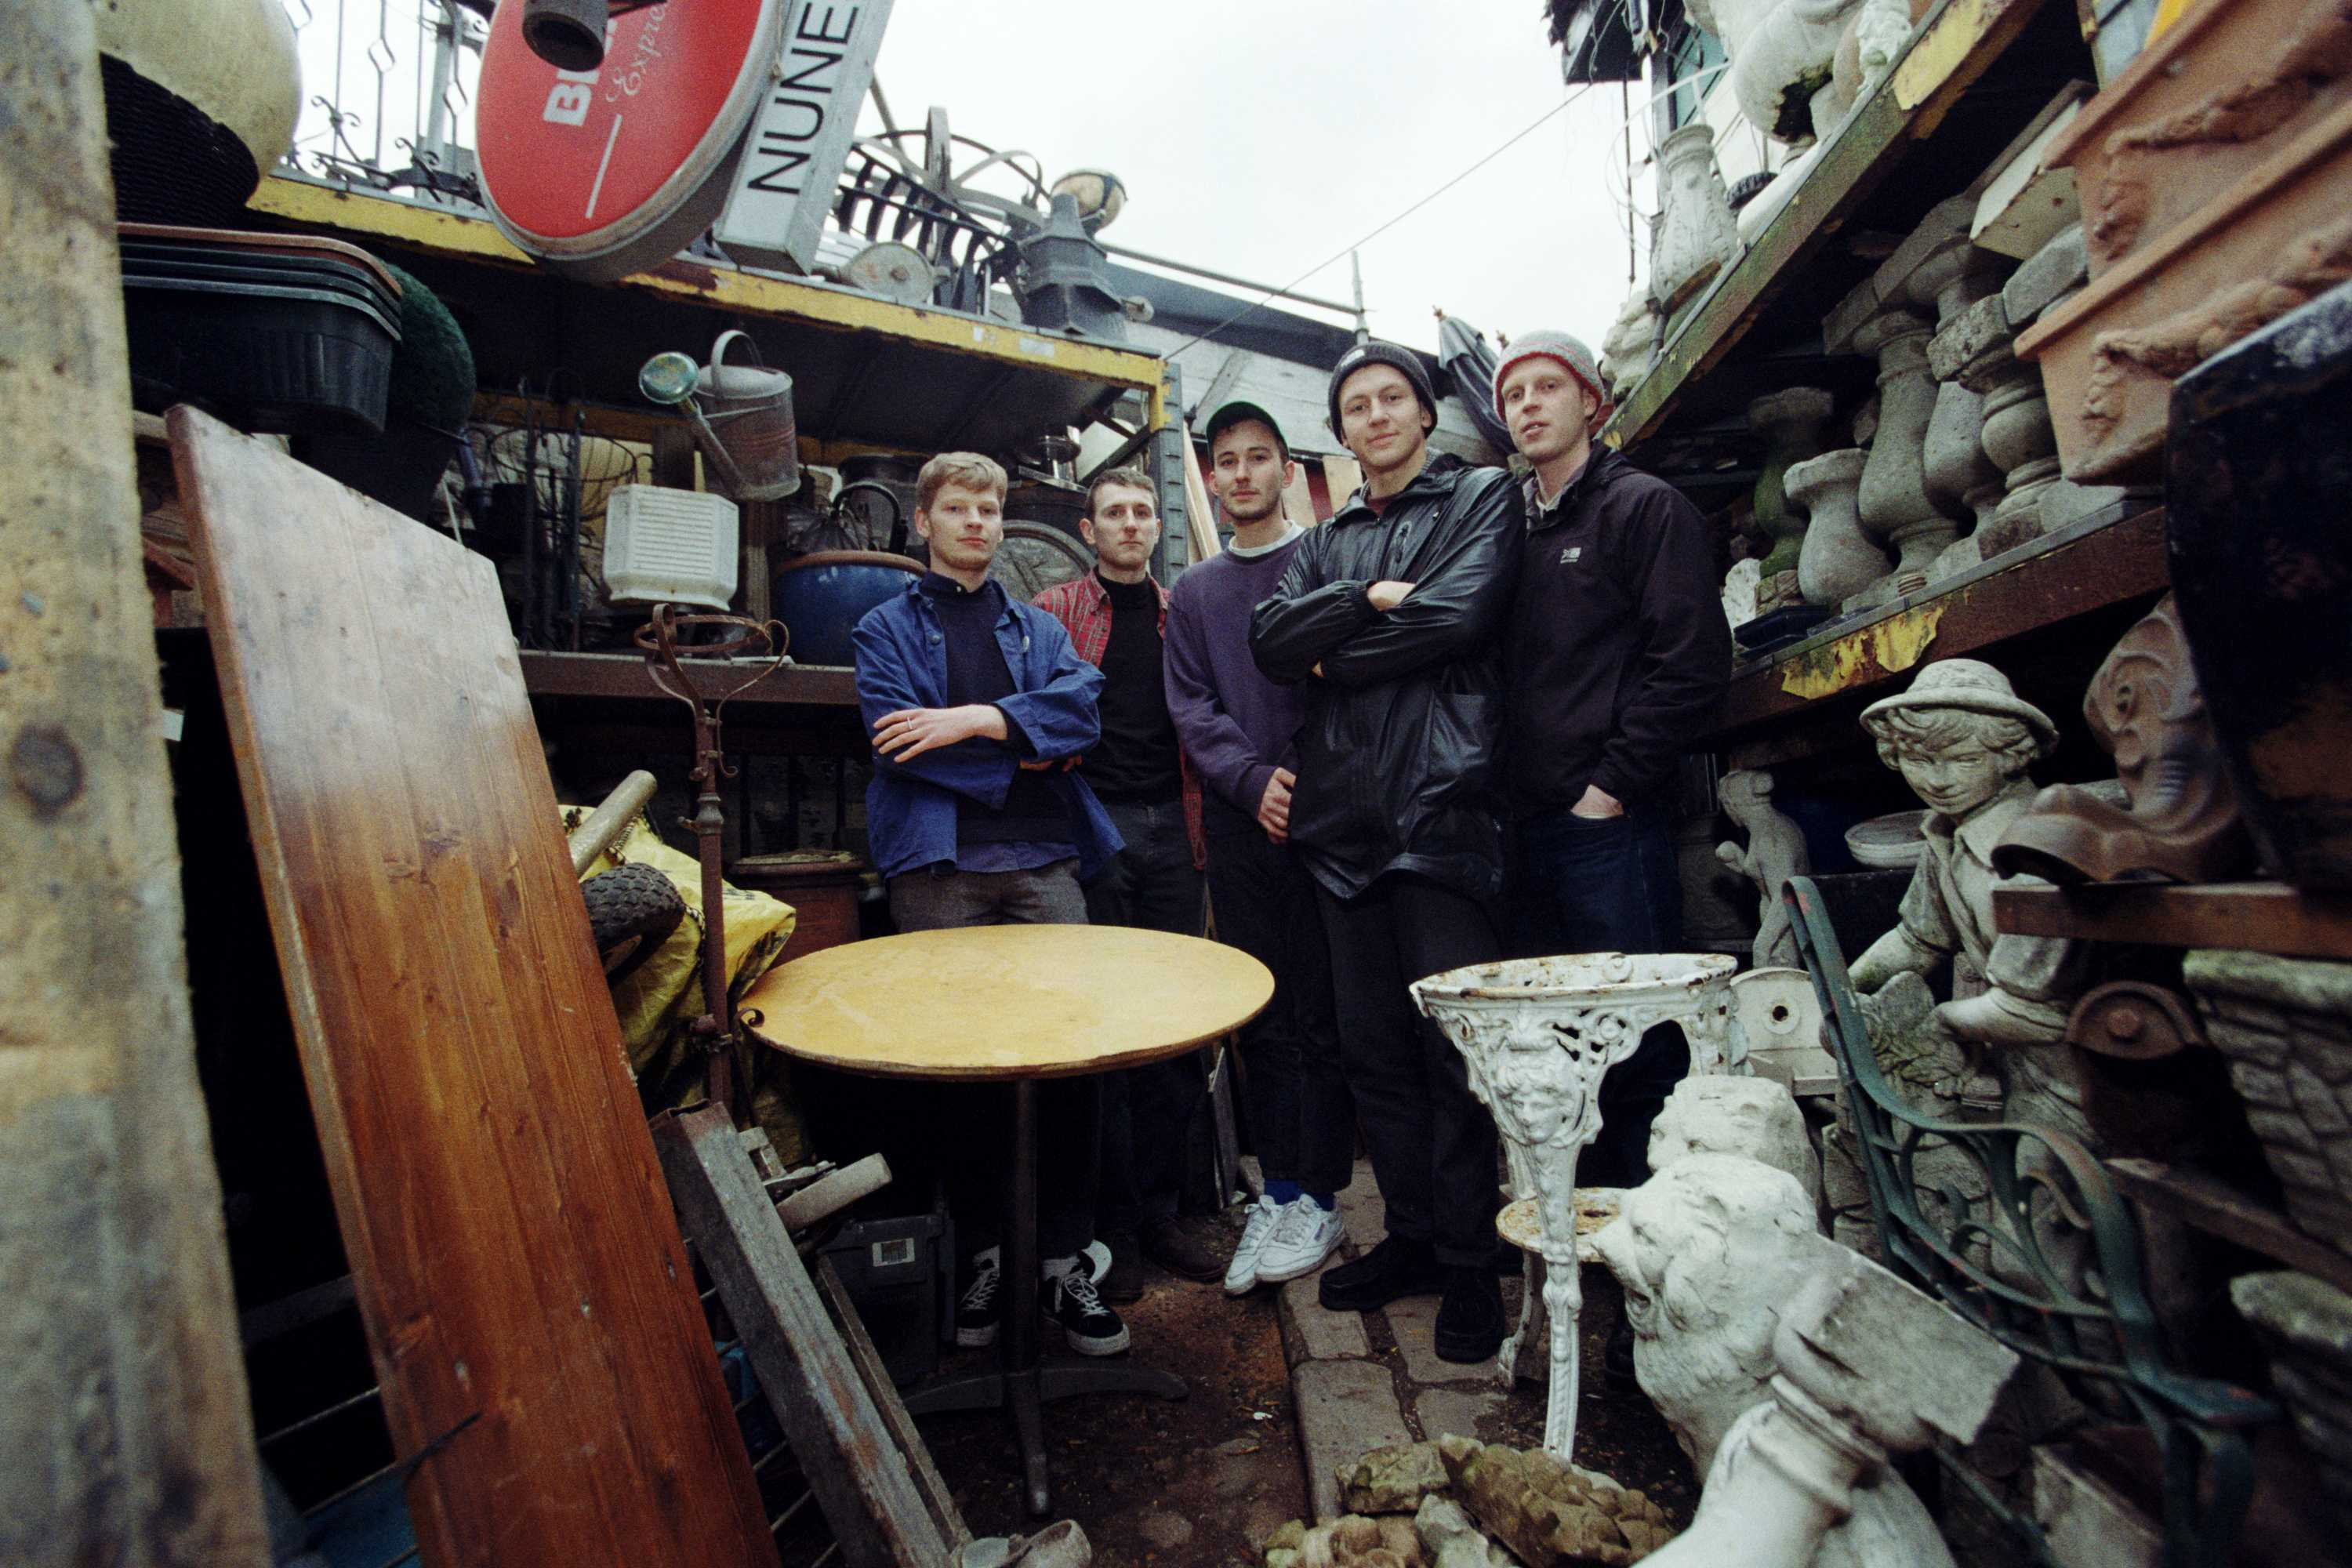 Turning up the dial on Squid, the Brighton bunch making mind-melting post-punk to rattle your bones